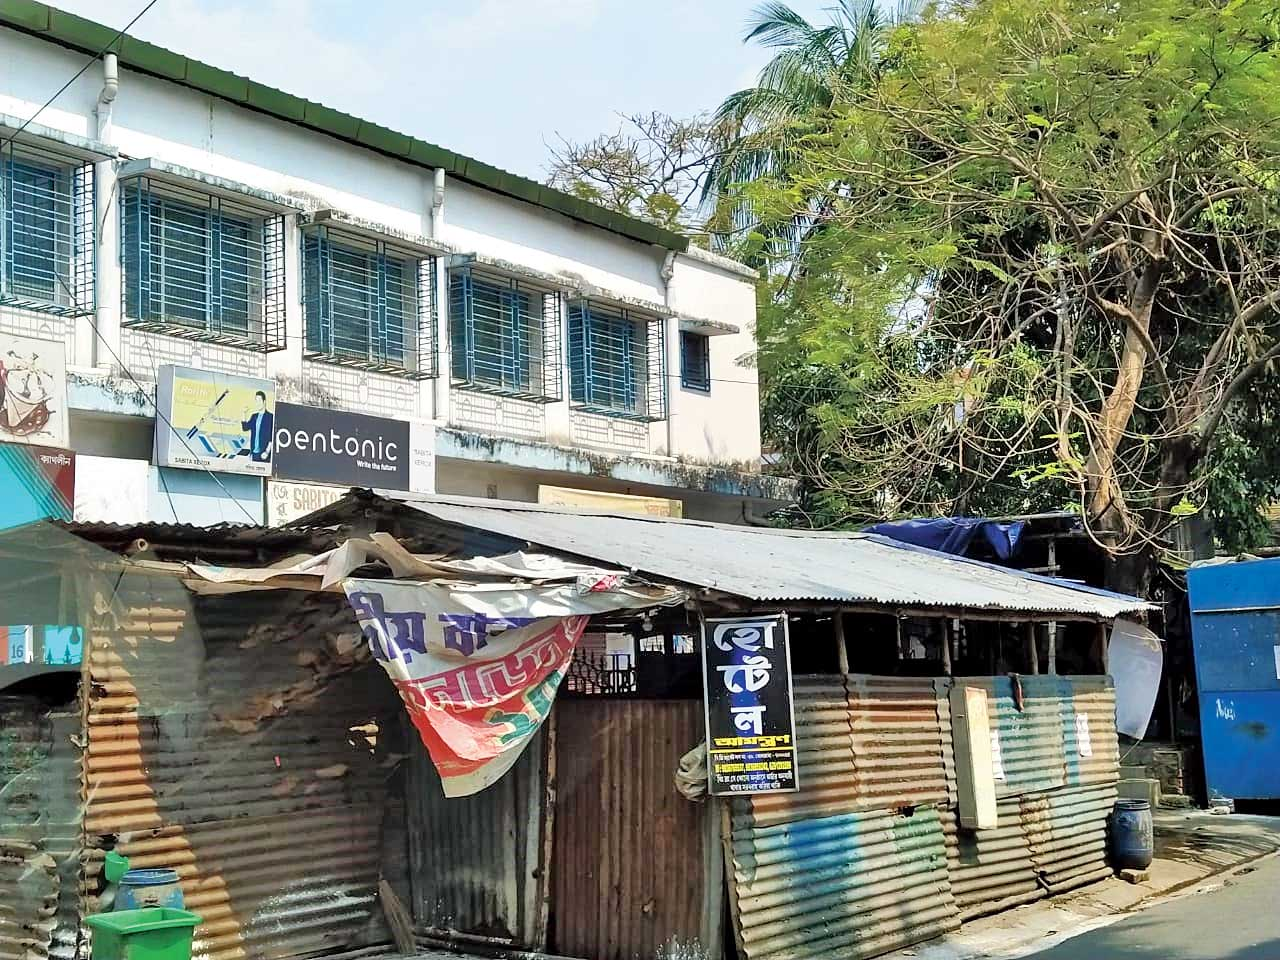 BD Market, where the infected man's family shopped, shut on Wednesday.